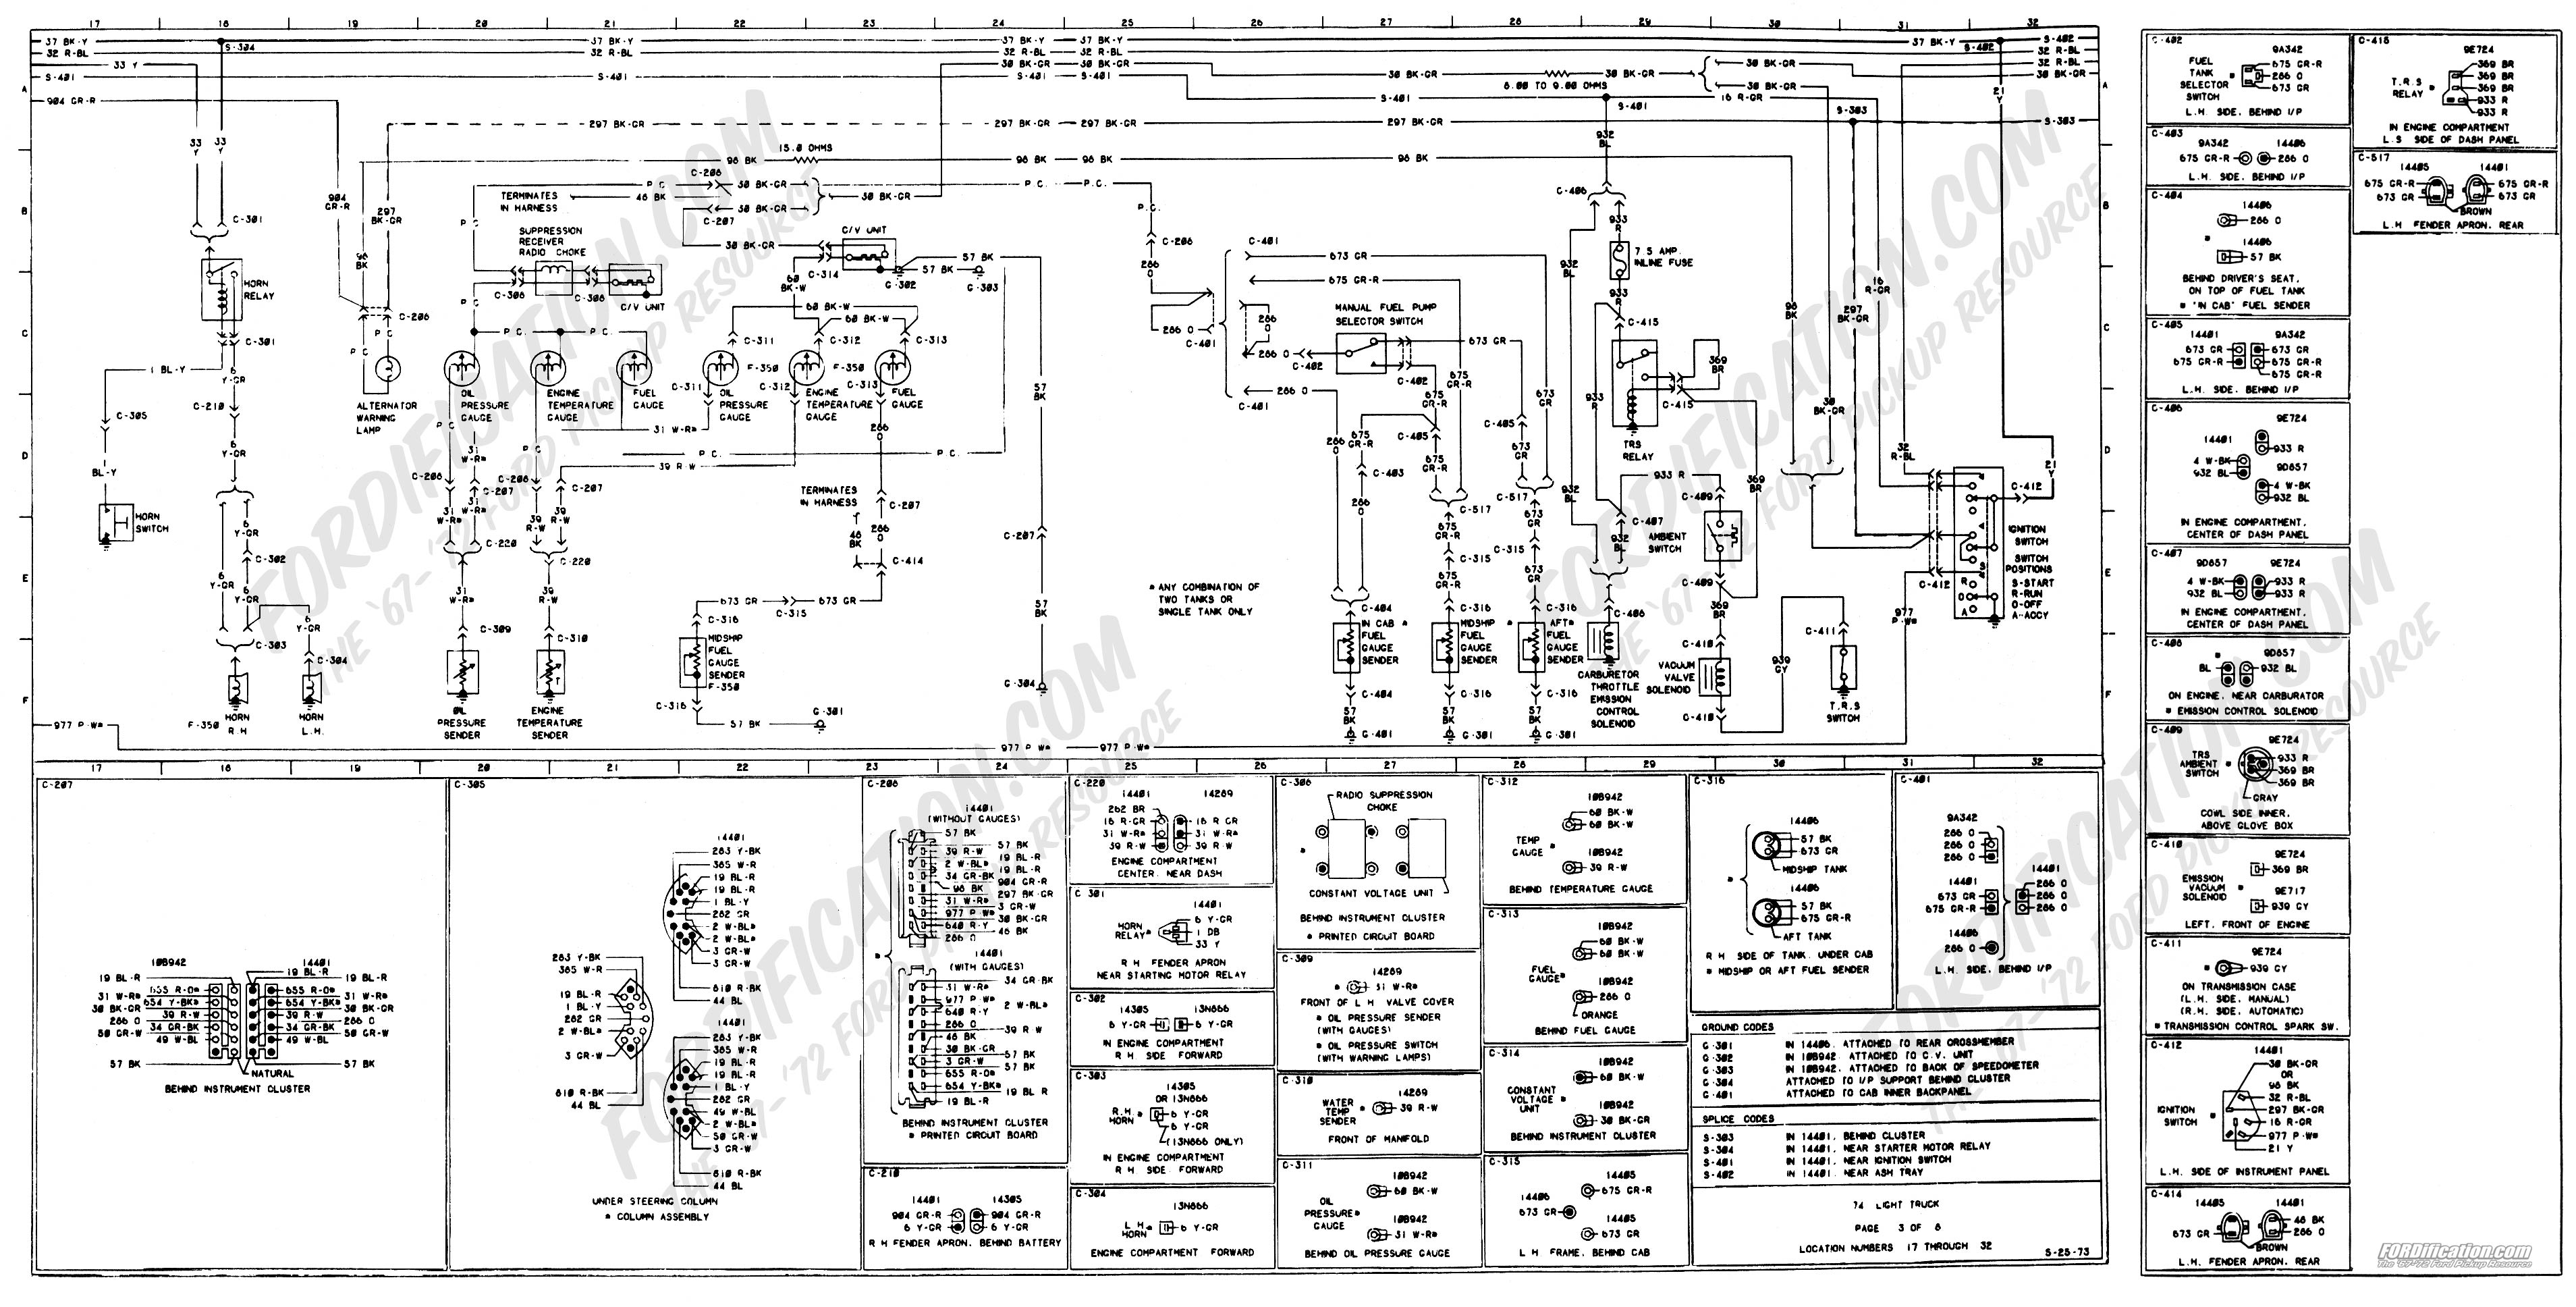 wiring_74master_3of8 1973 1979 ford truck wiring diagrams & schematics fordification net 1978 ford bronco wiring diagram at crackthecode.co